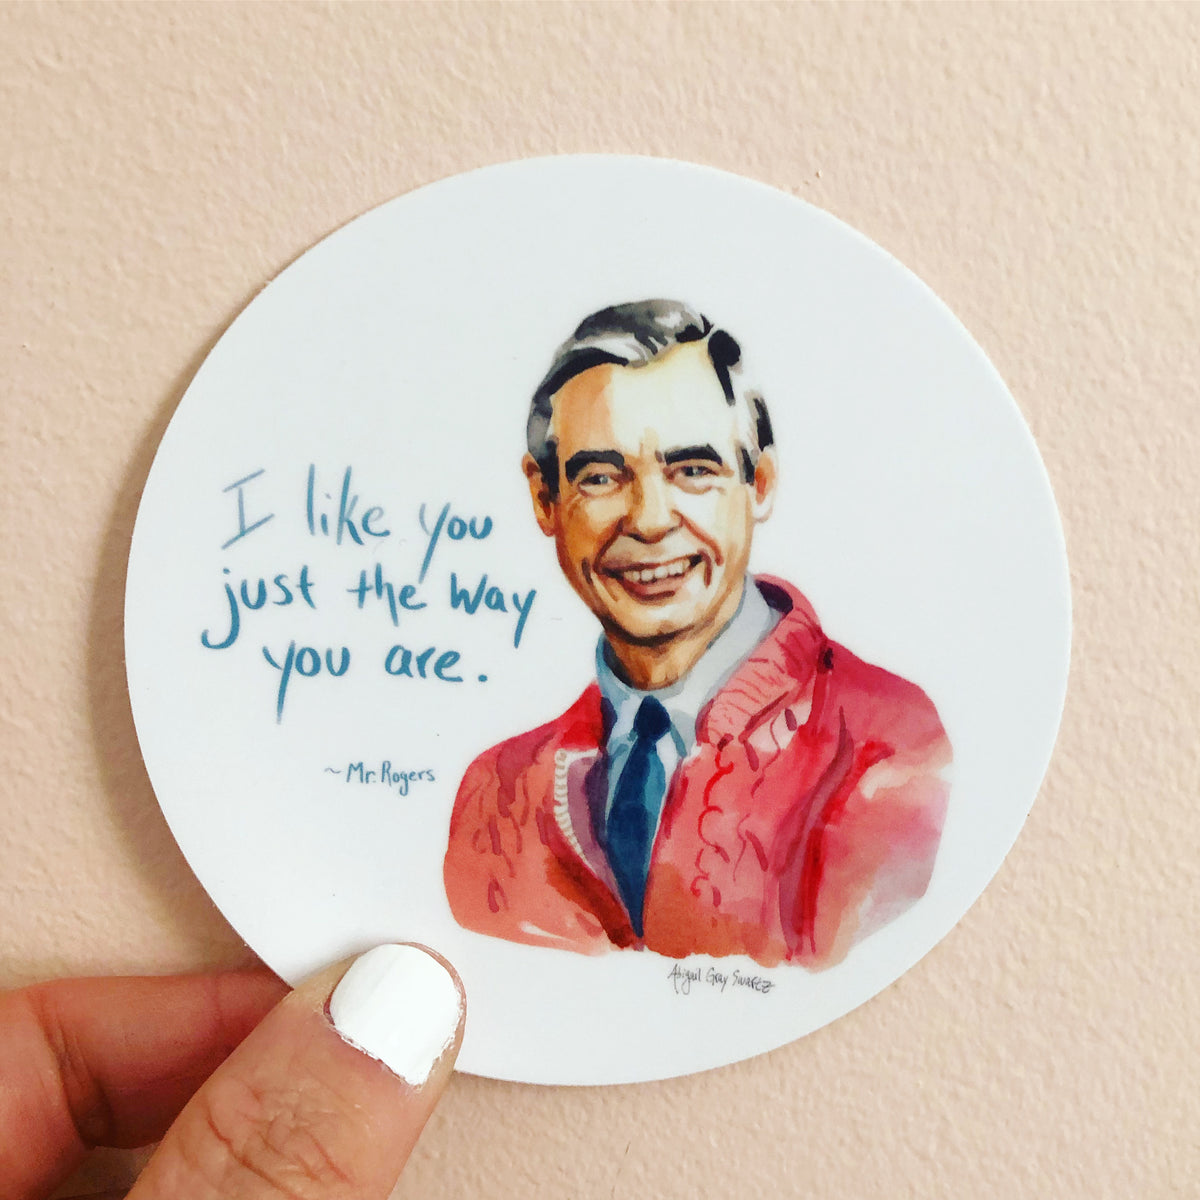 "Mr Rogers portrait sticker and quote ""I Like you just the way you are"" by Abigail Gray Swartz"